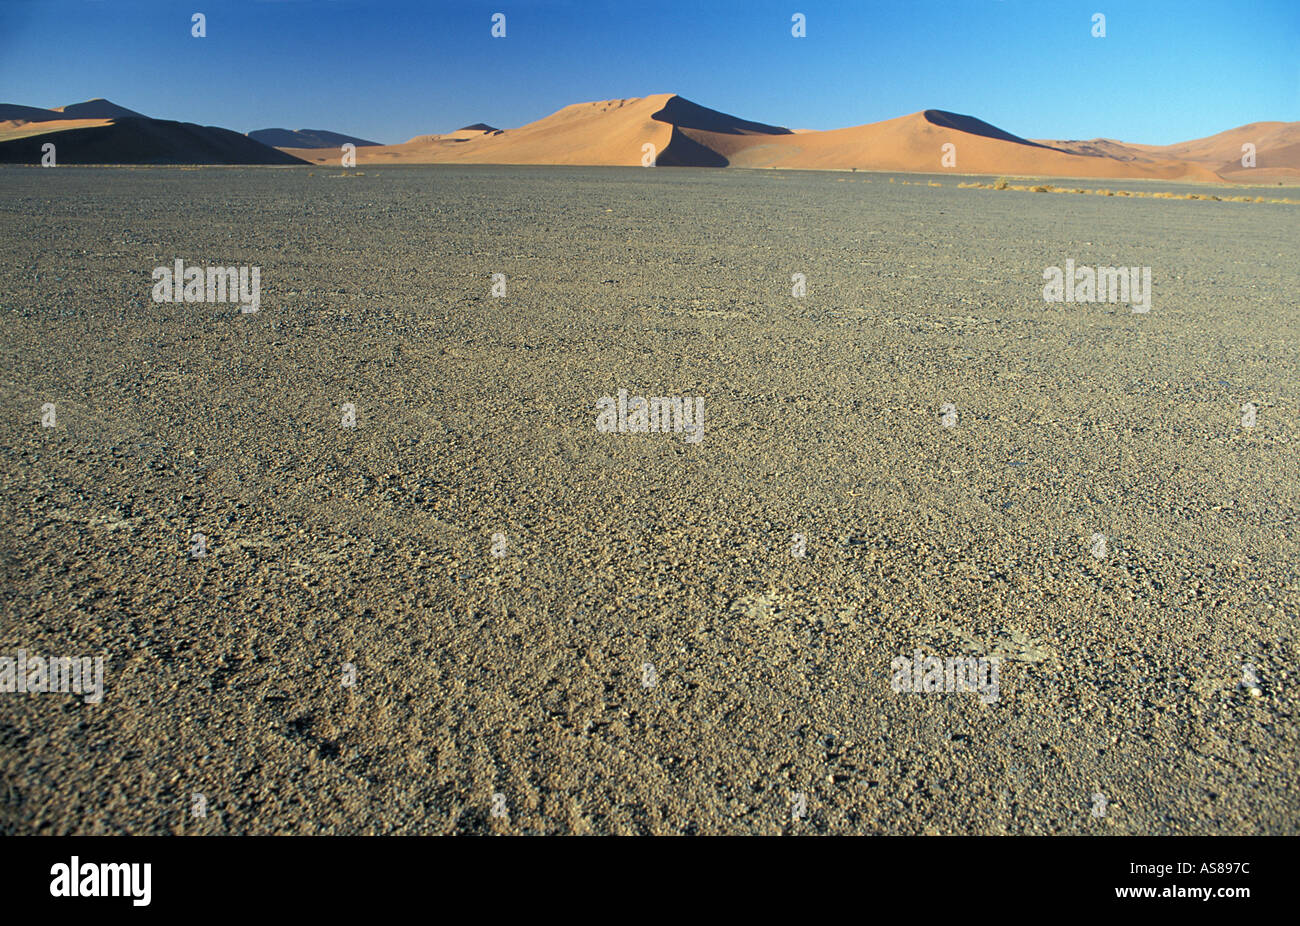 Sand dunes and surrounding desert at sunrise Namib Naukluft National Park en route to Dune 45 and Sossusvlei - Stock Image